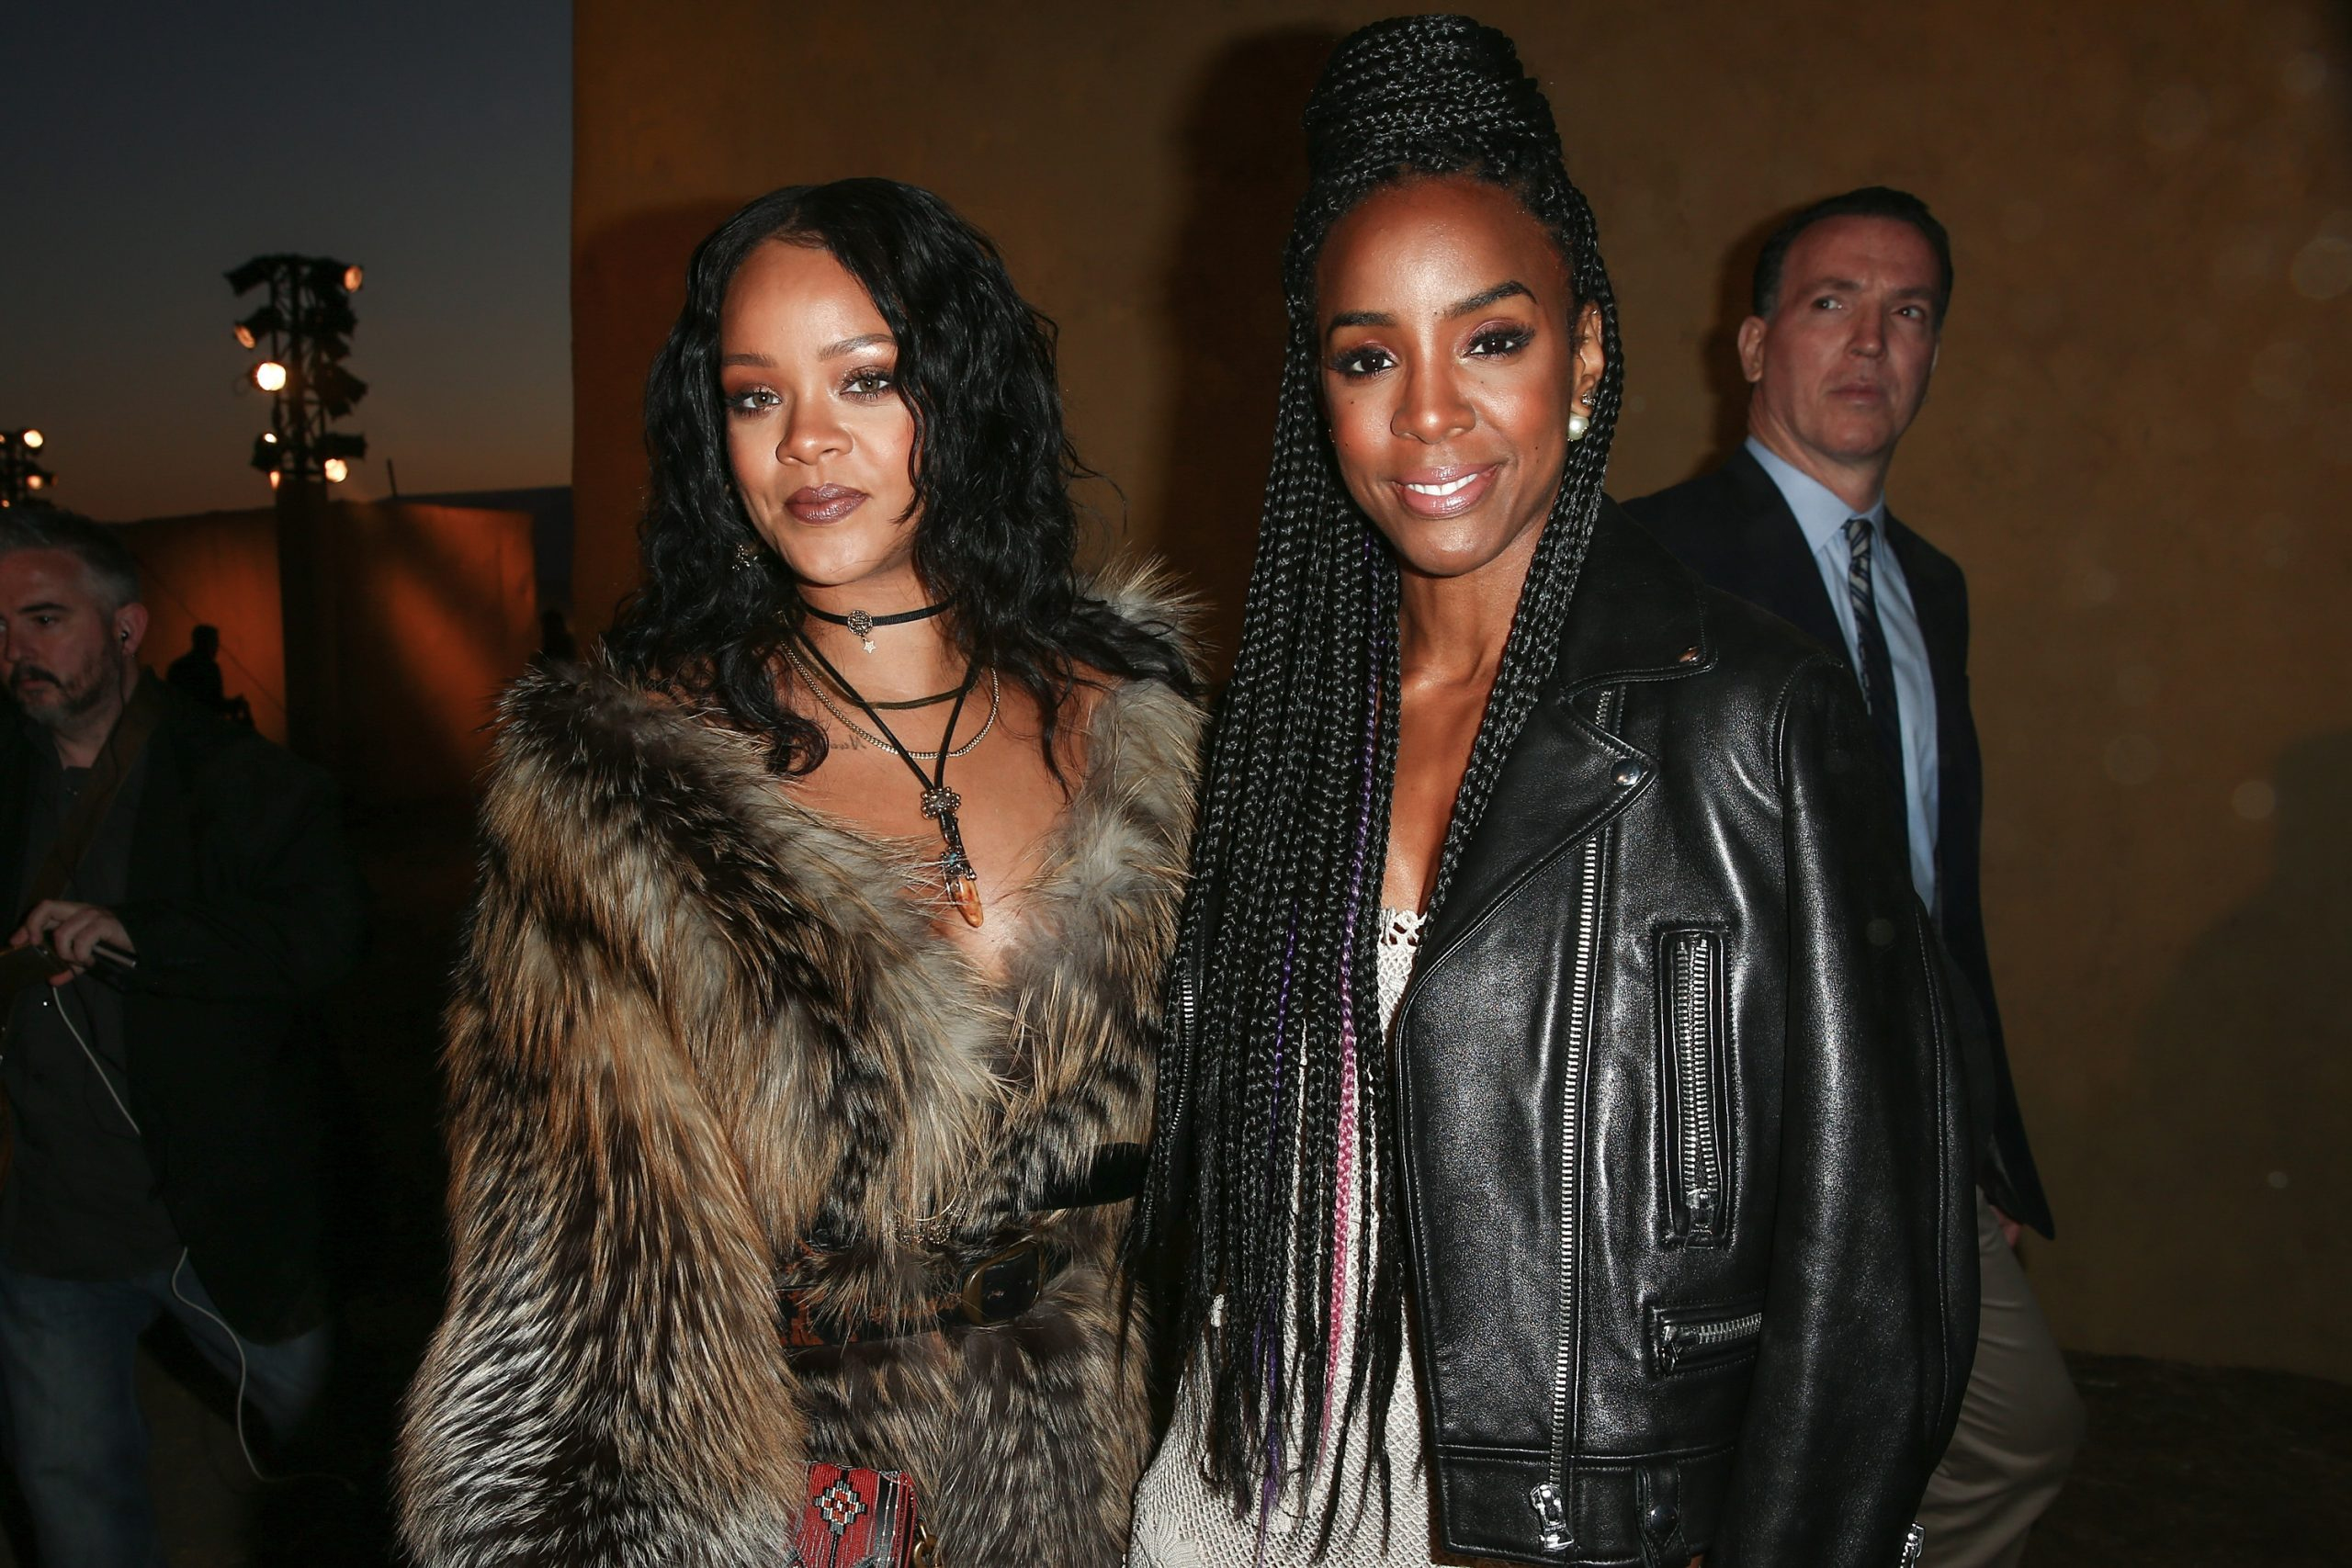 Rihanna and Kelly Rowland pose together for a photo in 2018